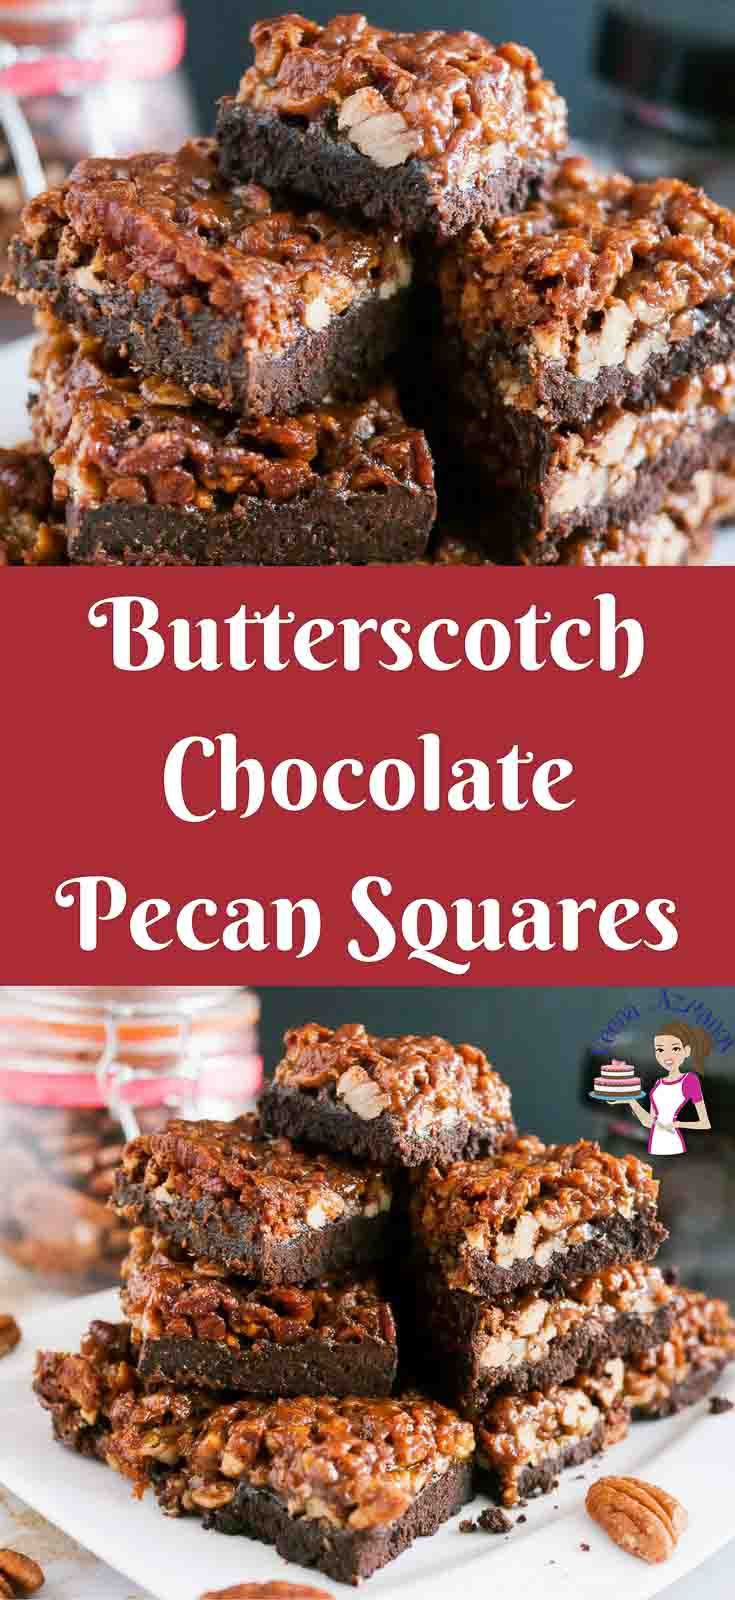 These butterscotch chocolate pecan squares are a real treat. Crisp biscuit base with a hint of cocoa and topped with rich butterscotch flavor pecans that just melt in the mouth. A Simple easy and effortless recipe that works great weather you want to make just for the family, treat guest or pack into a jar as a Food Gift Idea.